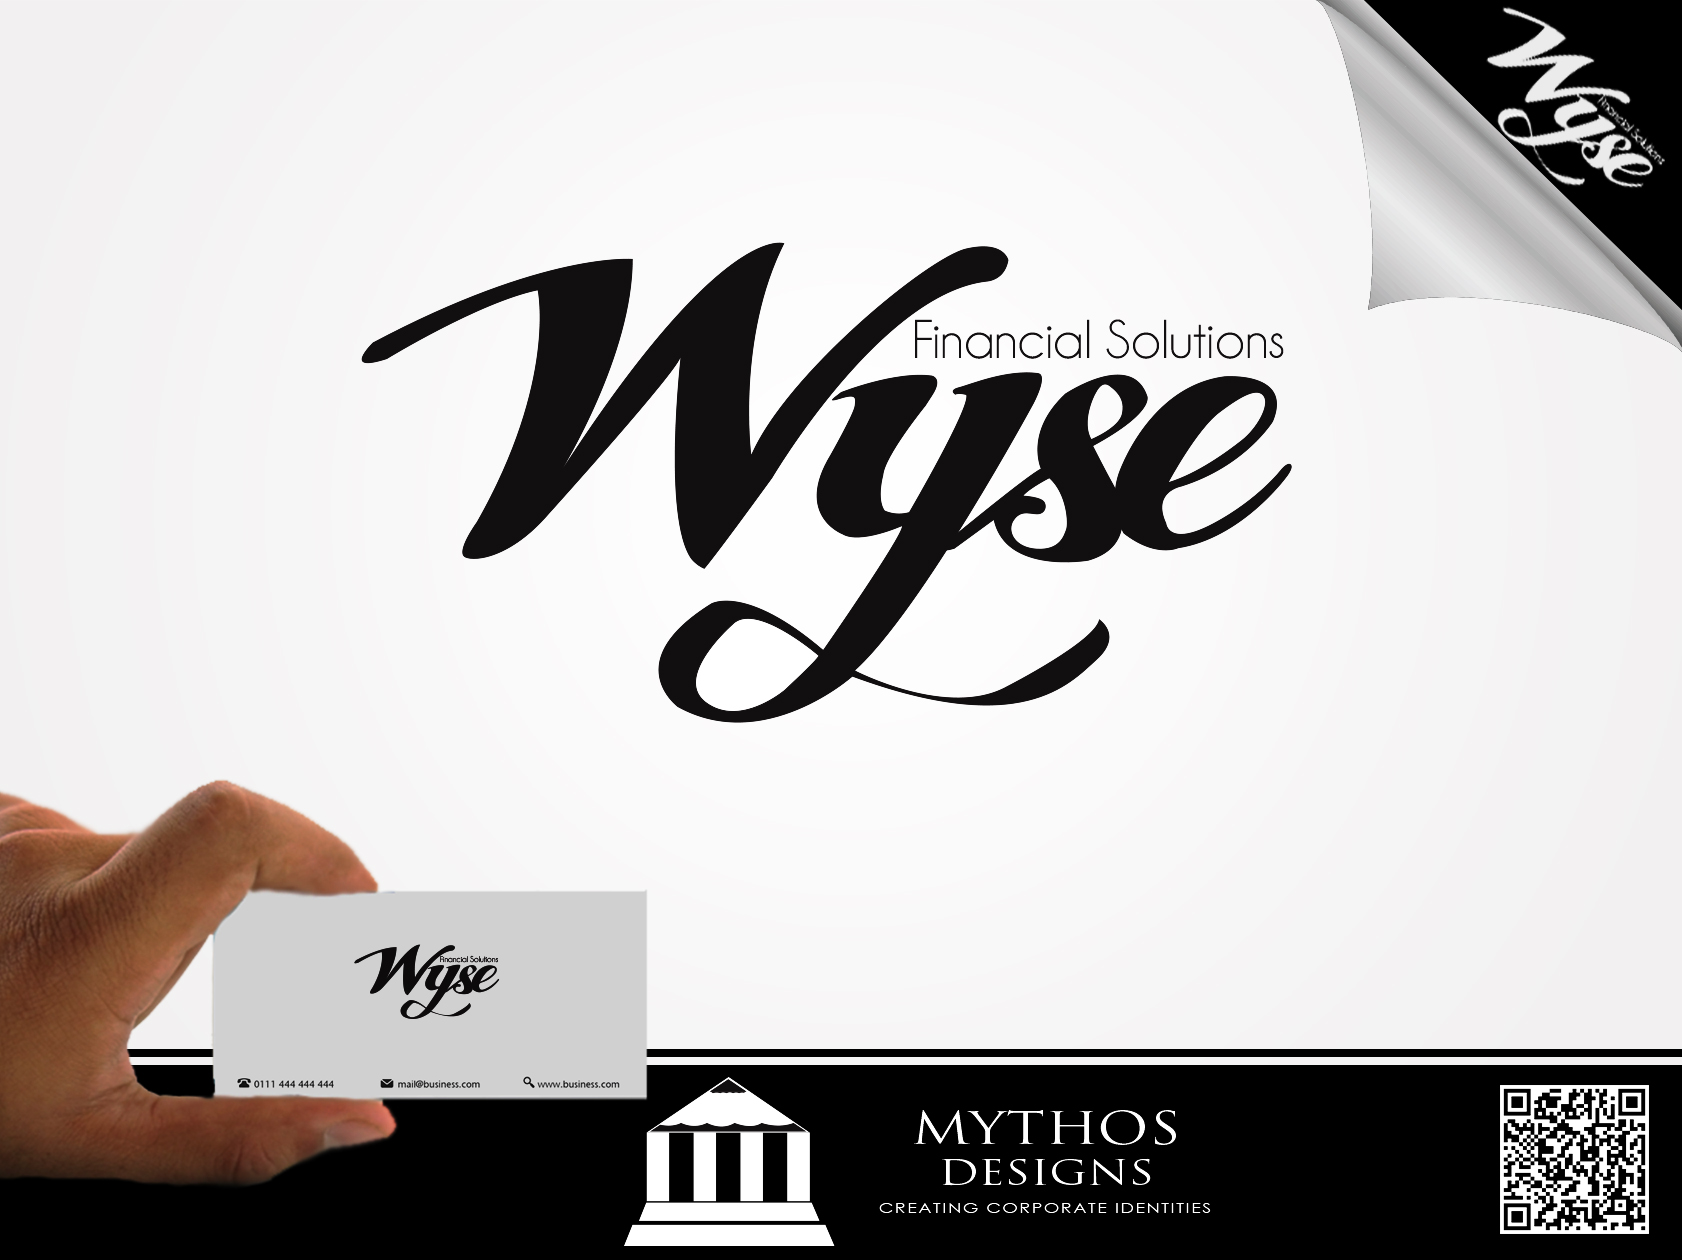 Logo Design by Mythos Designs - Entry No. 58 in the Logo Design Contest Fun Logo Design for Wyse Financial Solutions.